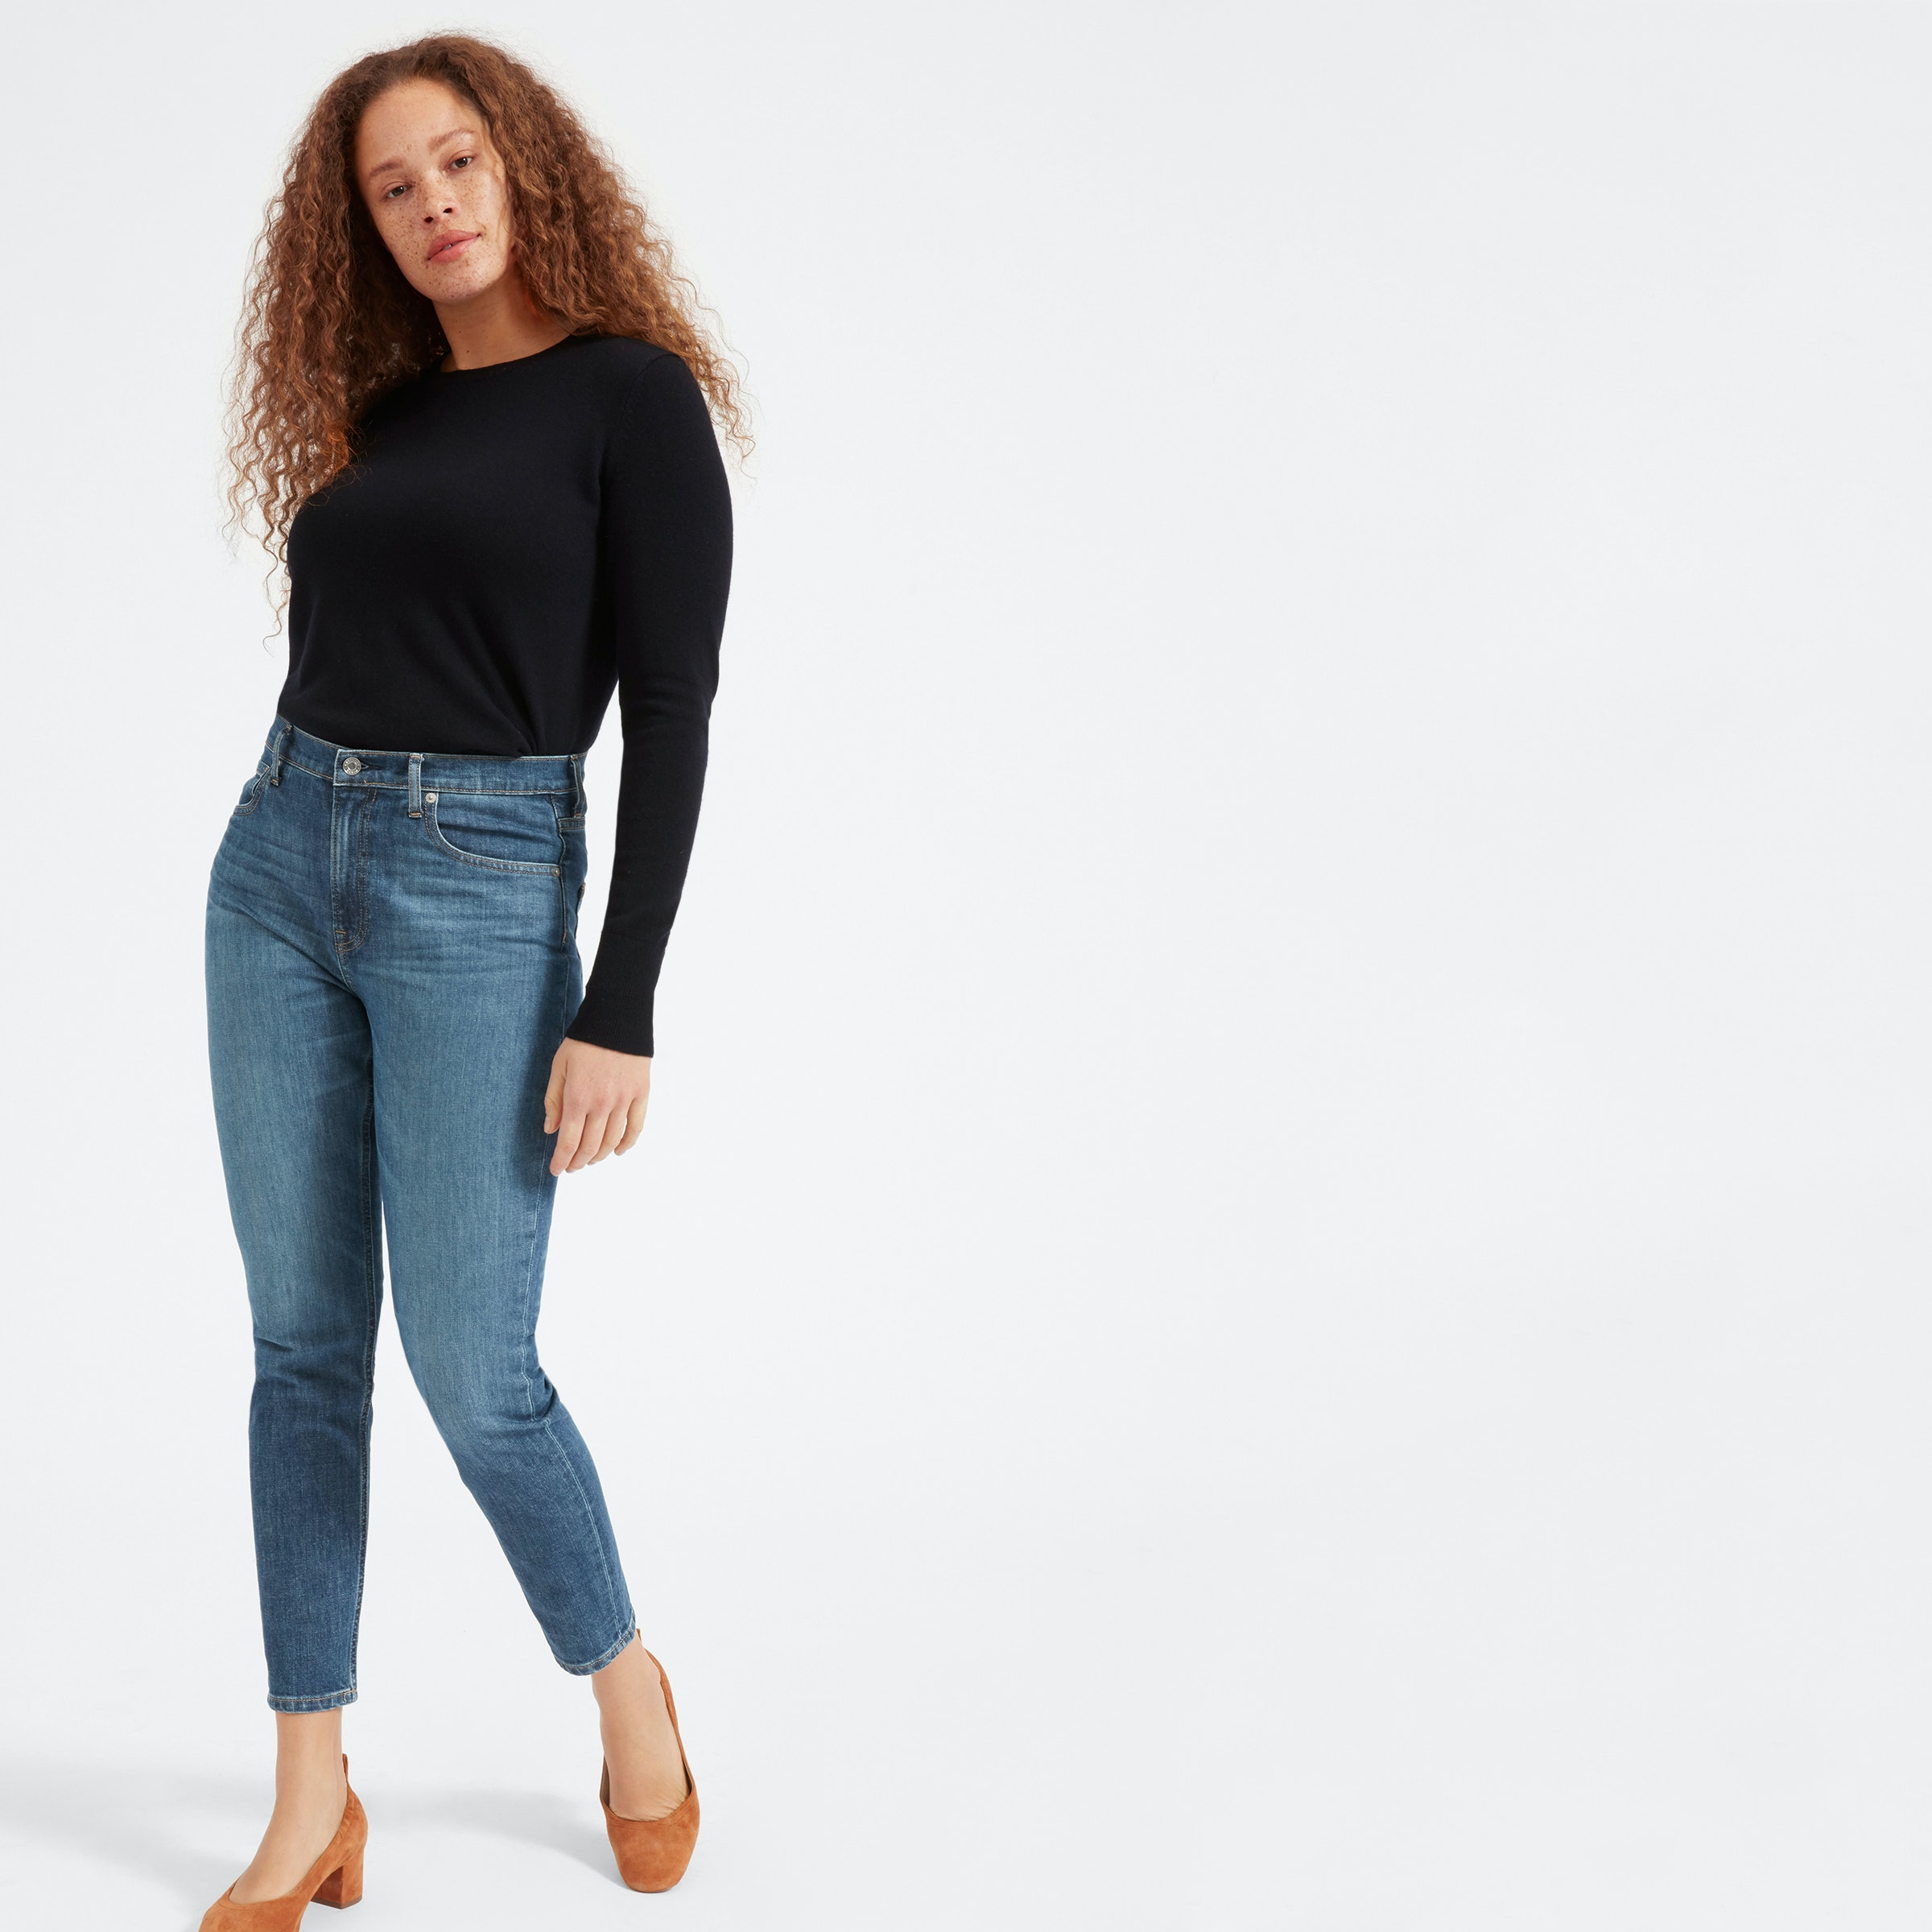 Best mid to high rise jeans